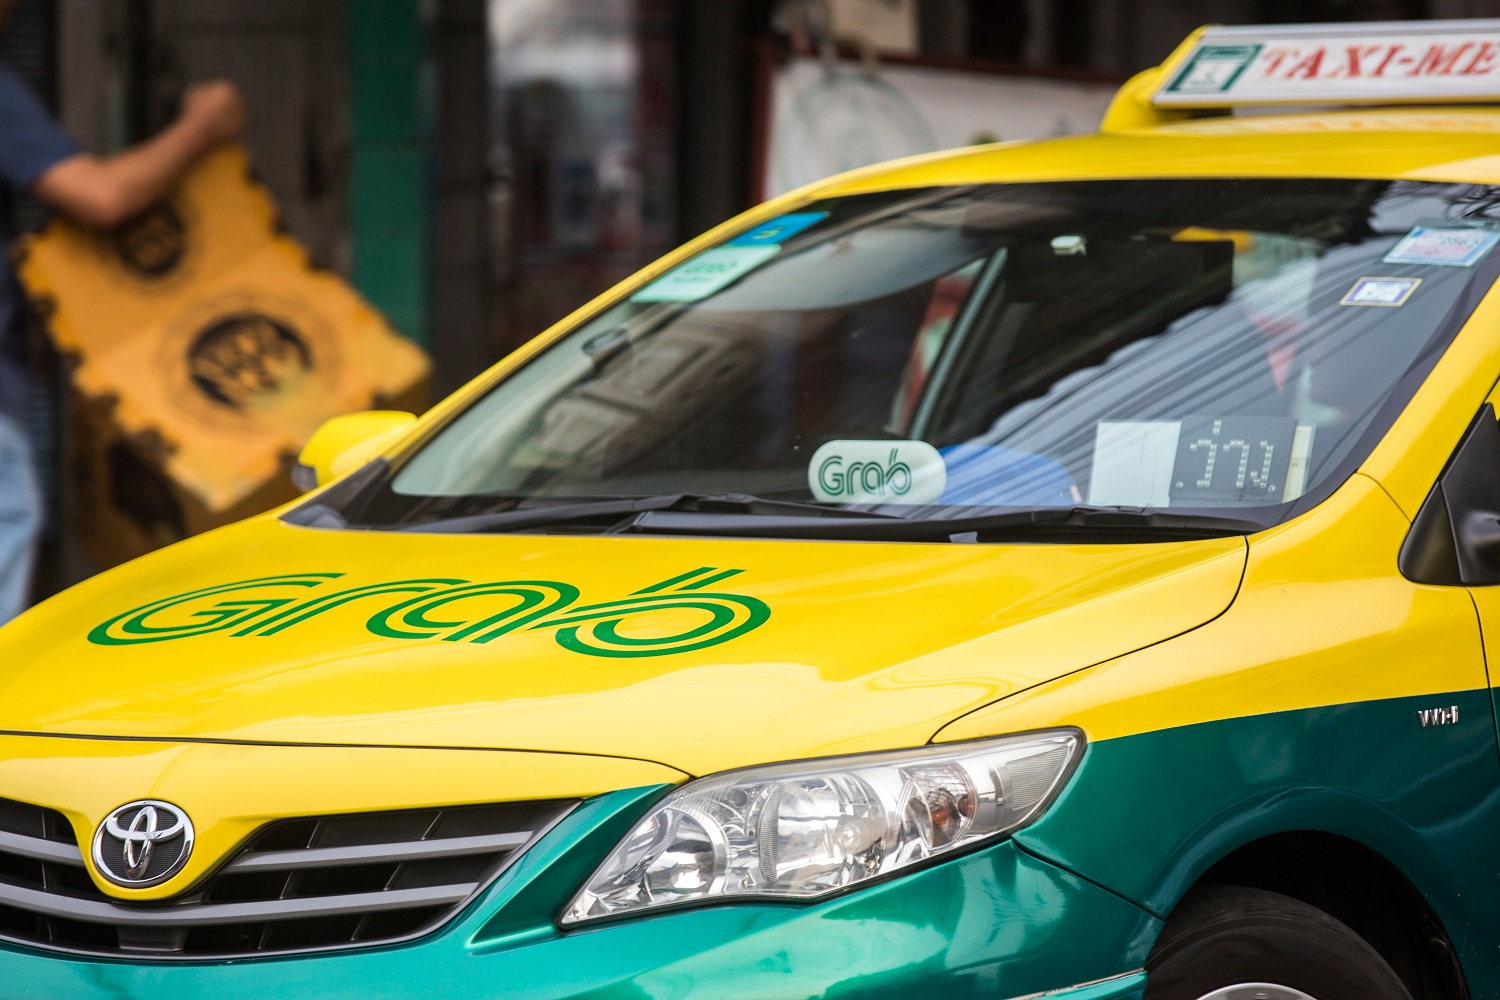 Toyota Injects Record $1 Billion In Southeast Asia's Ride-hailing Giant Grab